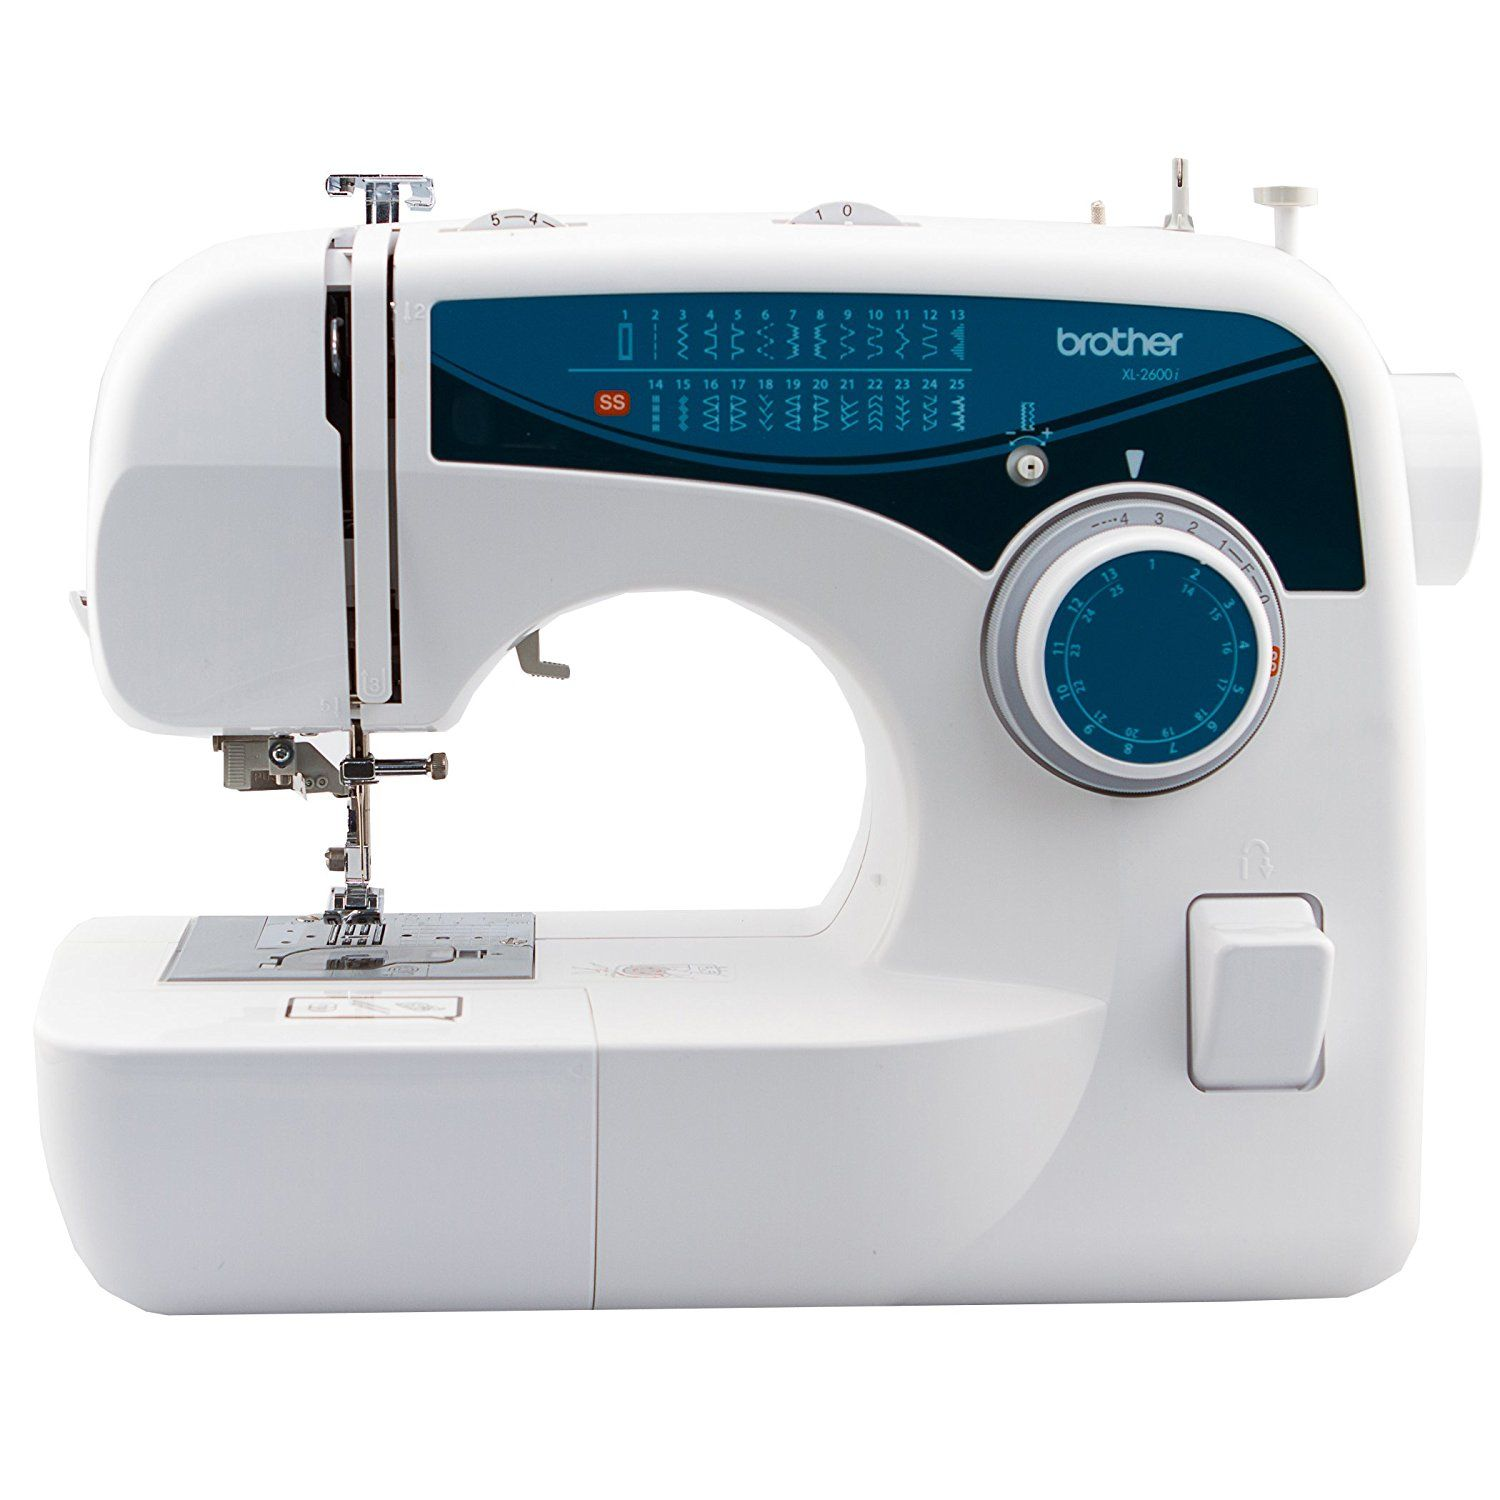 Brother XL2600I Sew Advance Sew Affordable 25-Stitch Free-Arm Sewing ...